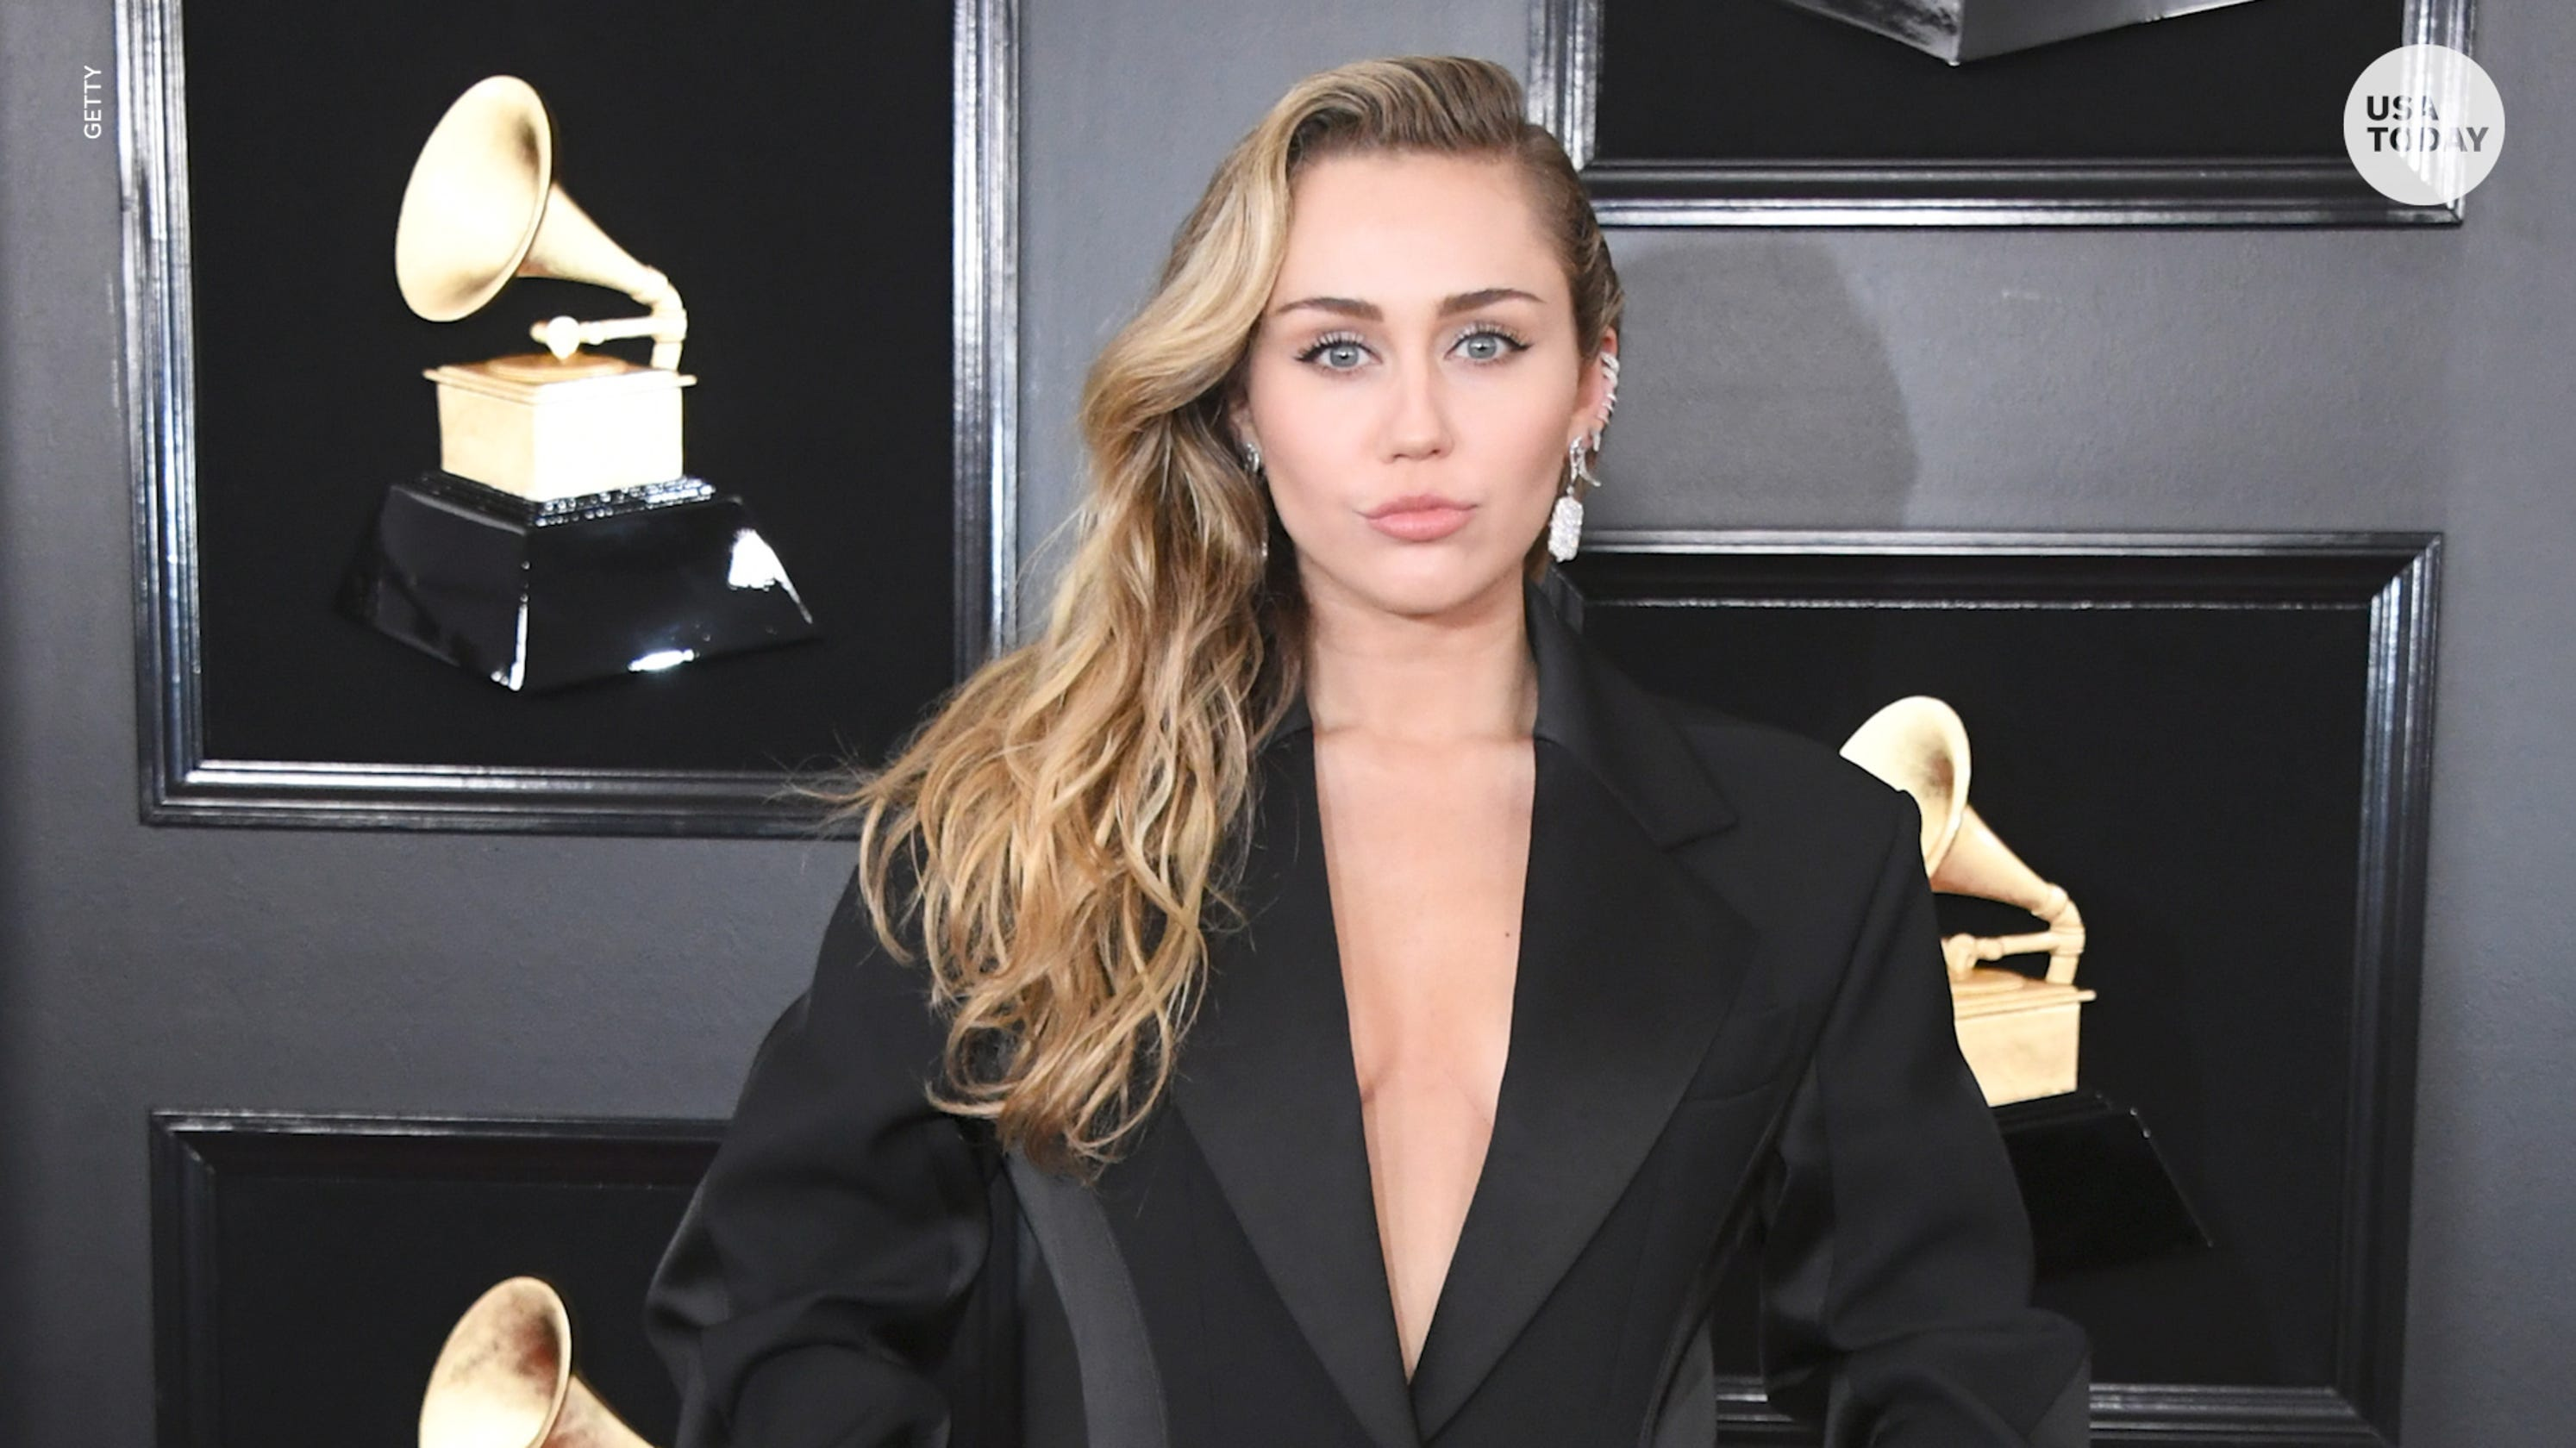 Miley Cyrus denies cheating on Liam Hemsworth, says she had to leave 'partying' life behind